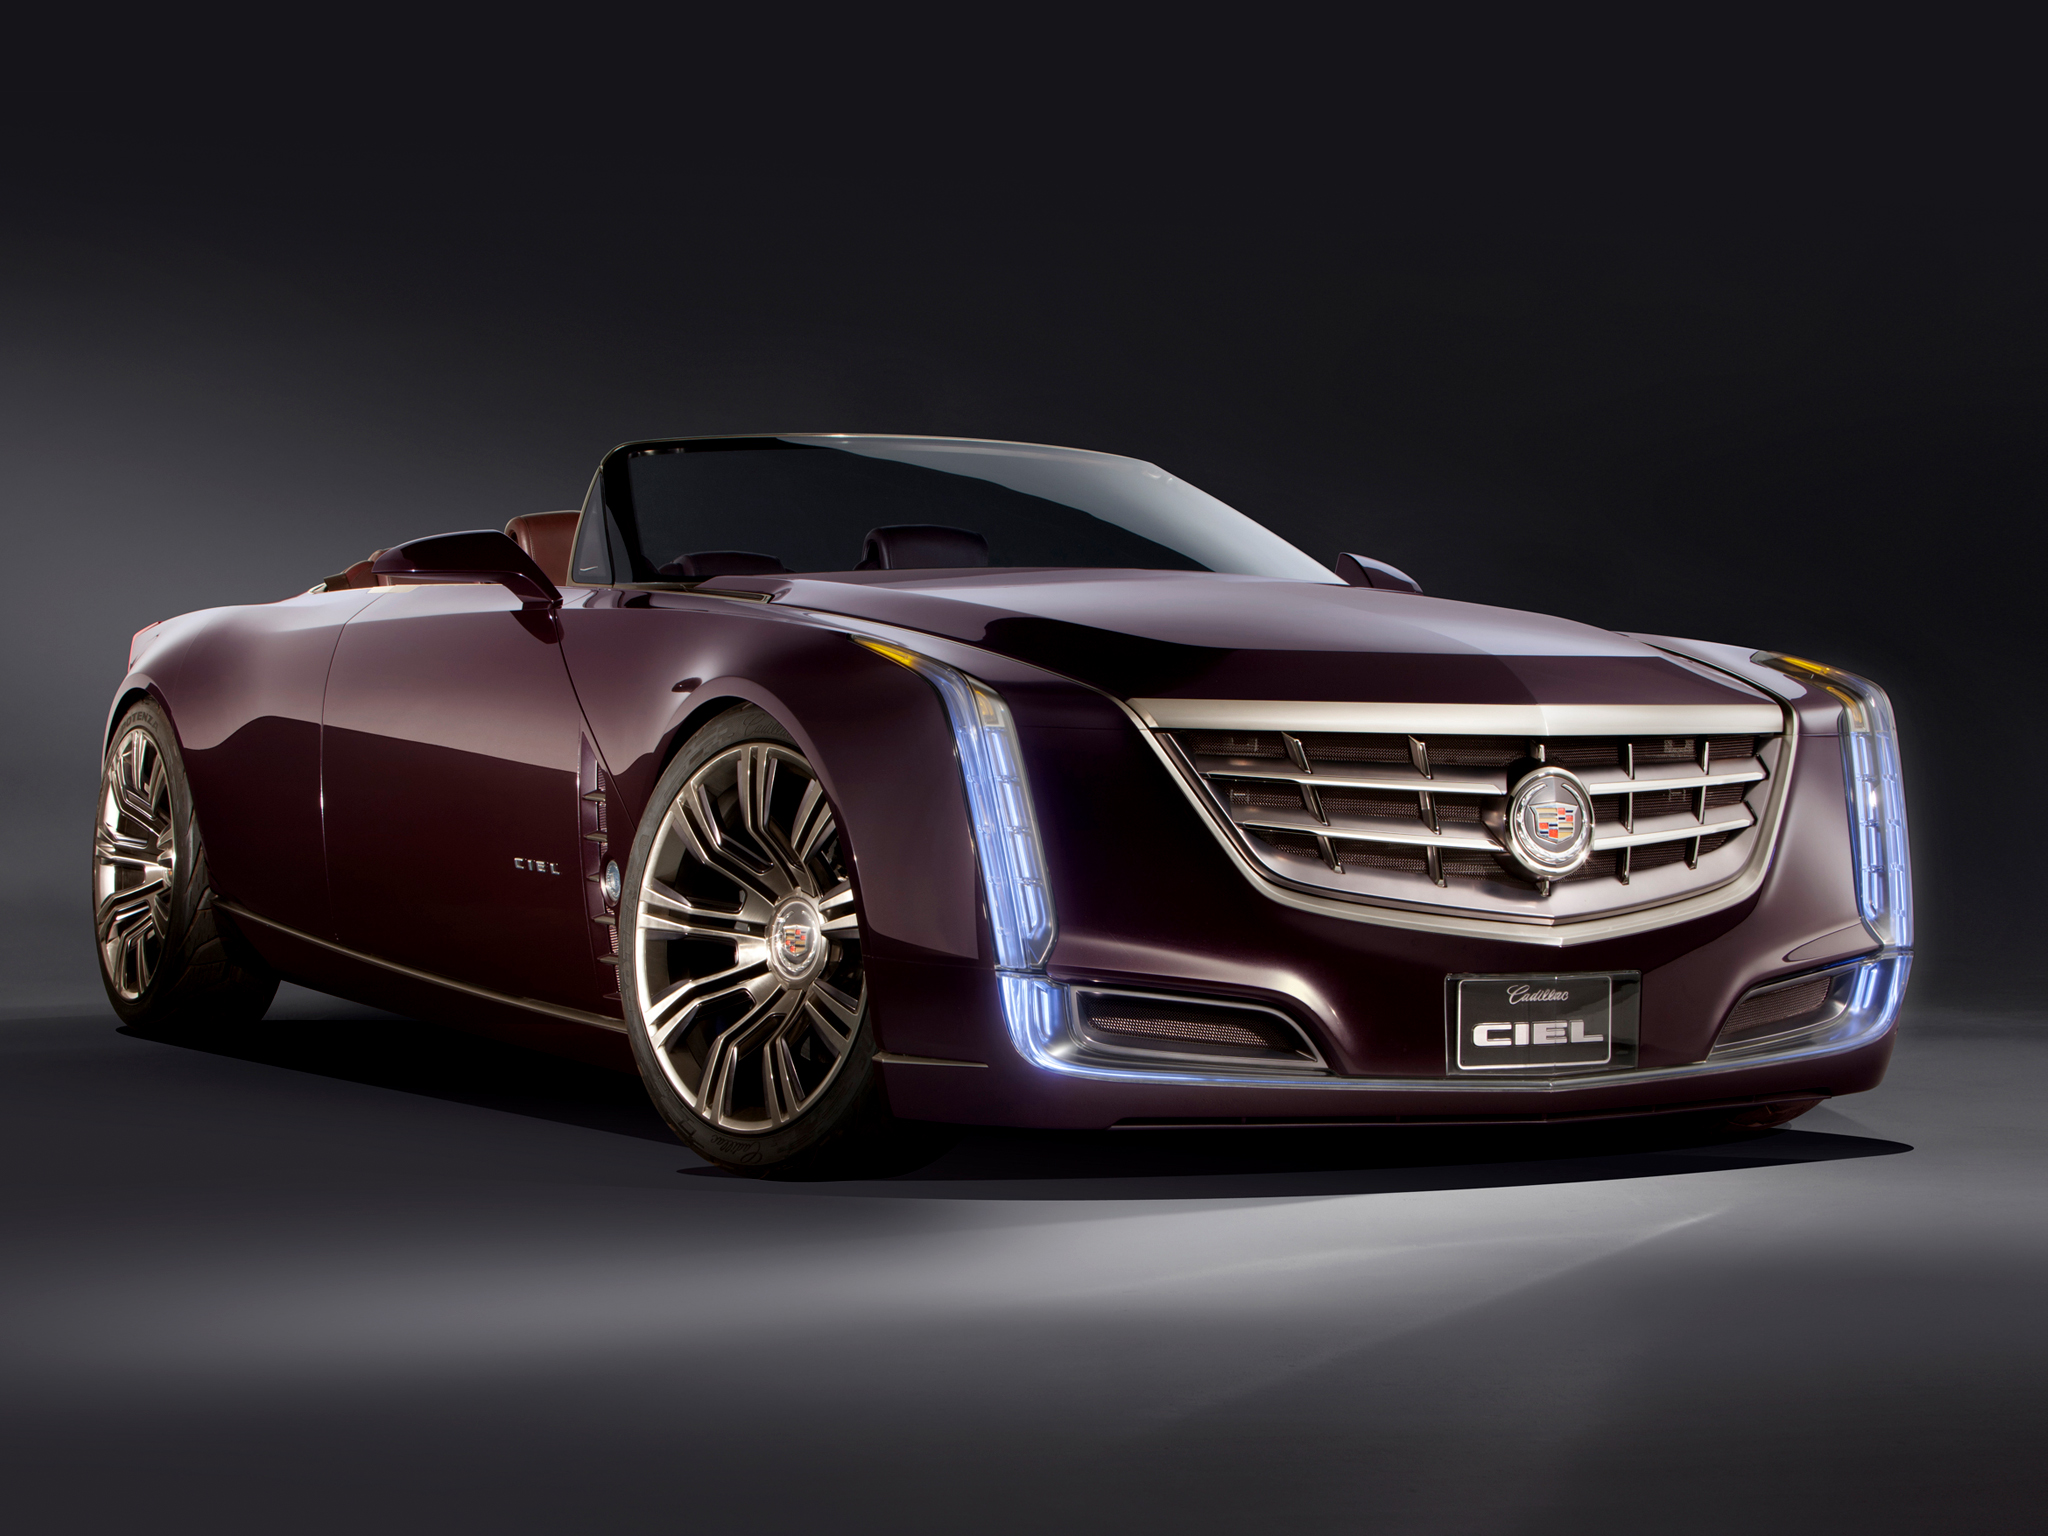 Cadillac Ciel Concept Wallpaper For Desktop